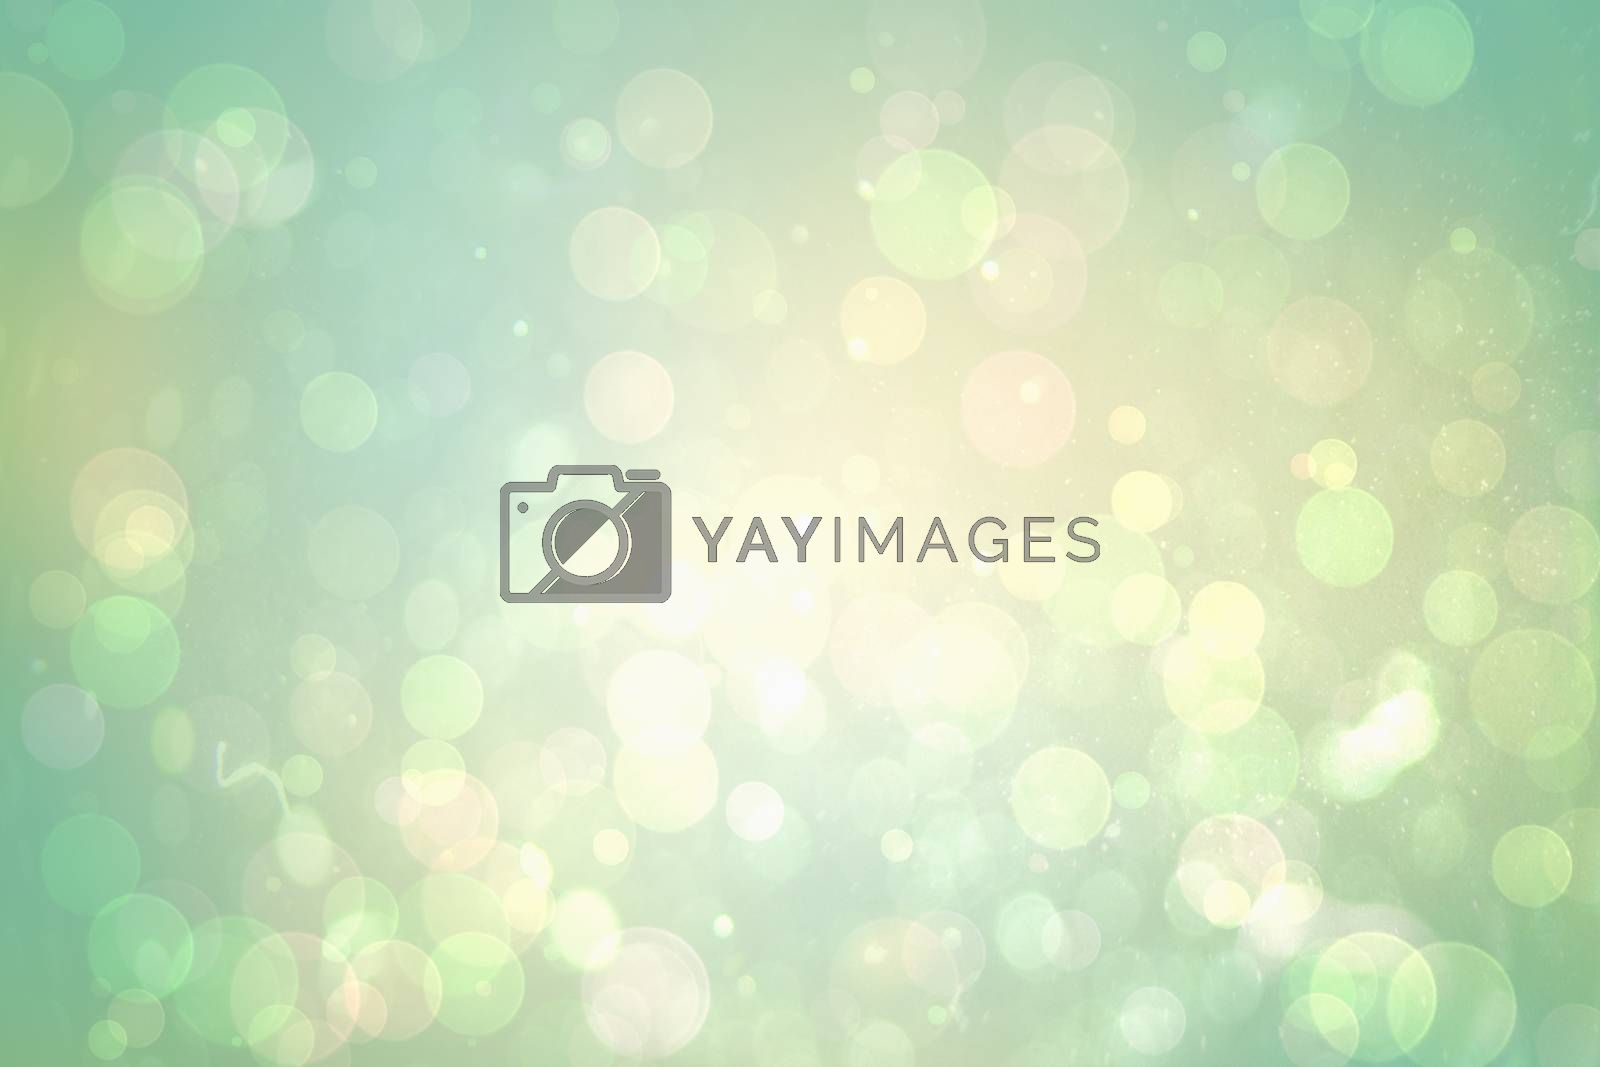 Royalty free image of Green abstract light spot design by Wavebreakmedia